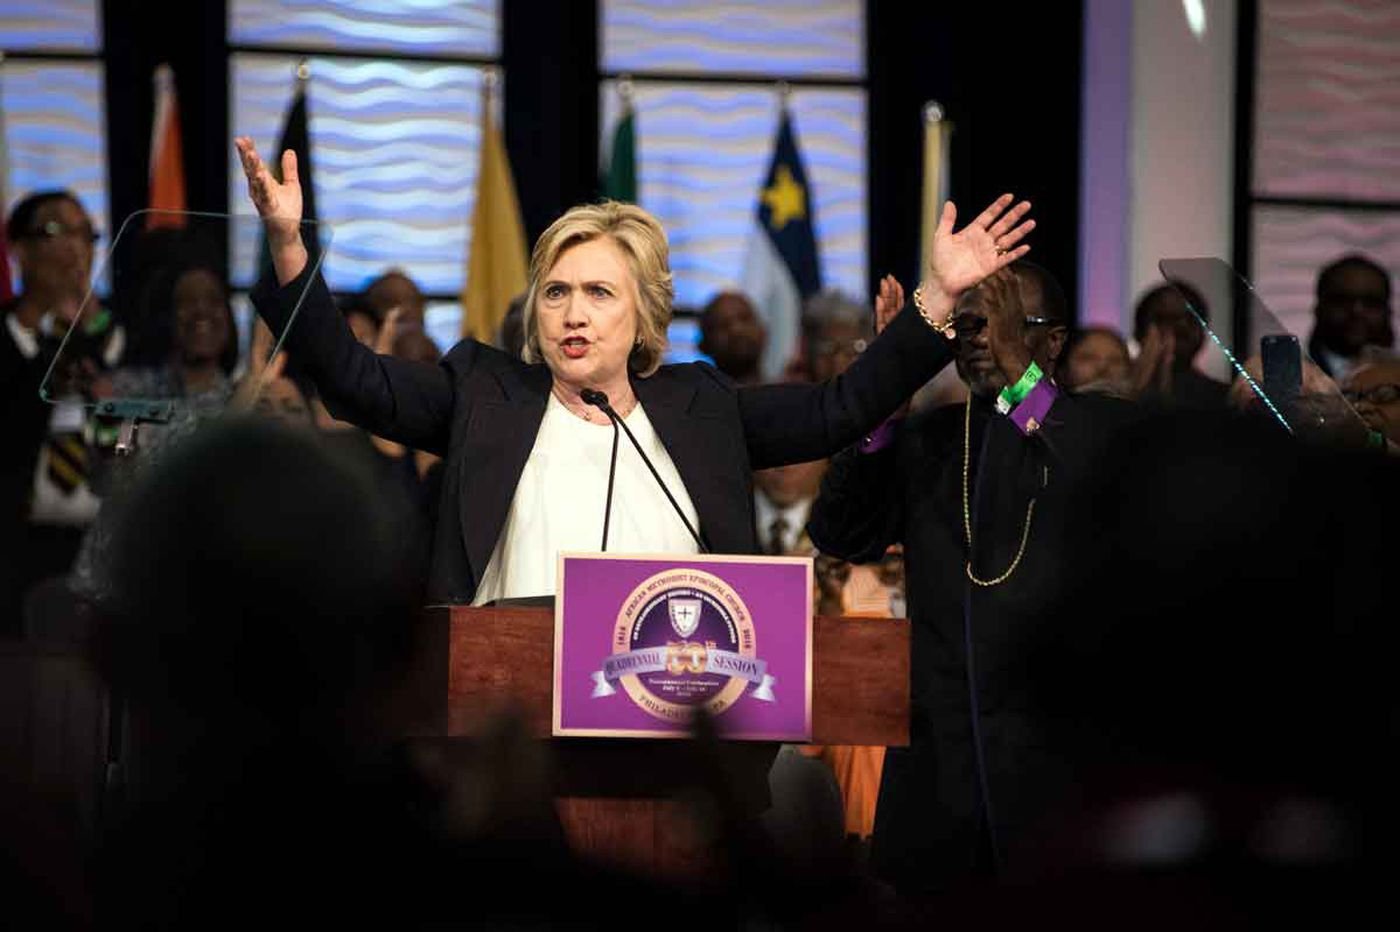 Hillary Clinton in Philly speech: Police killings show 'implicit bias'